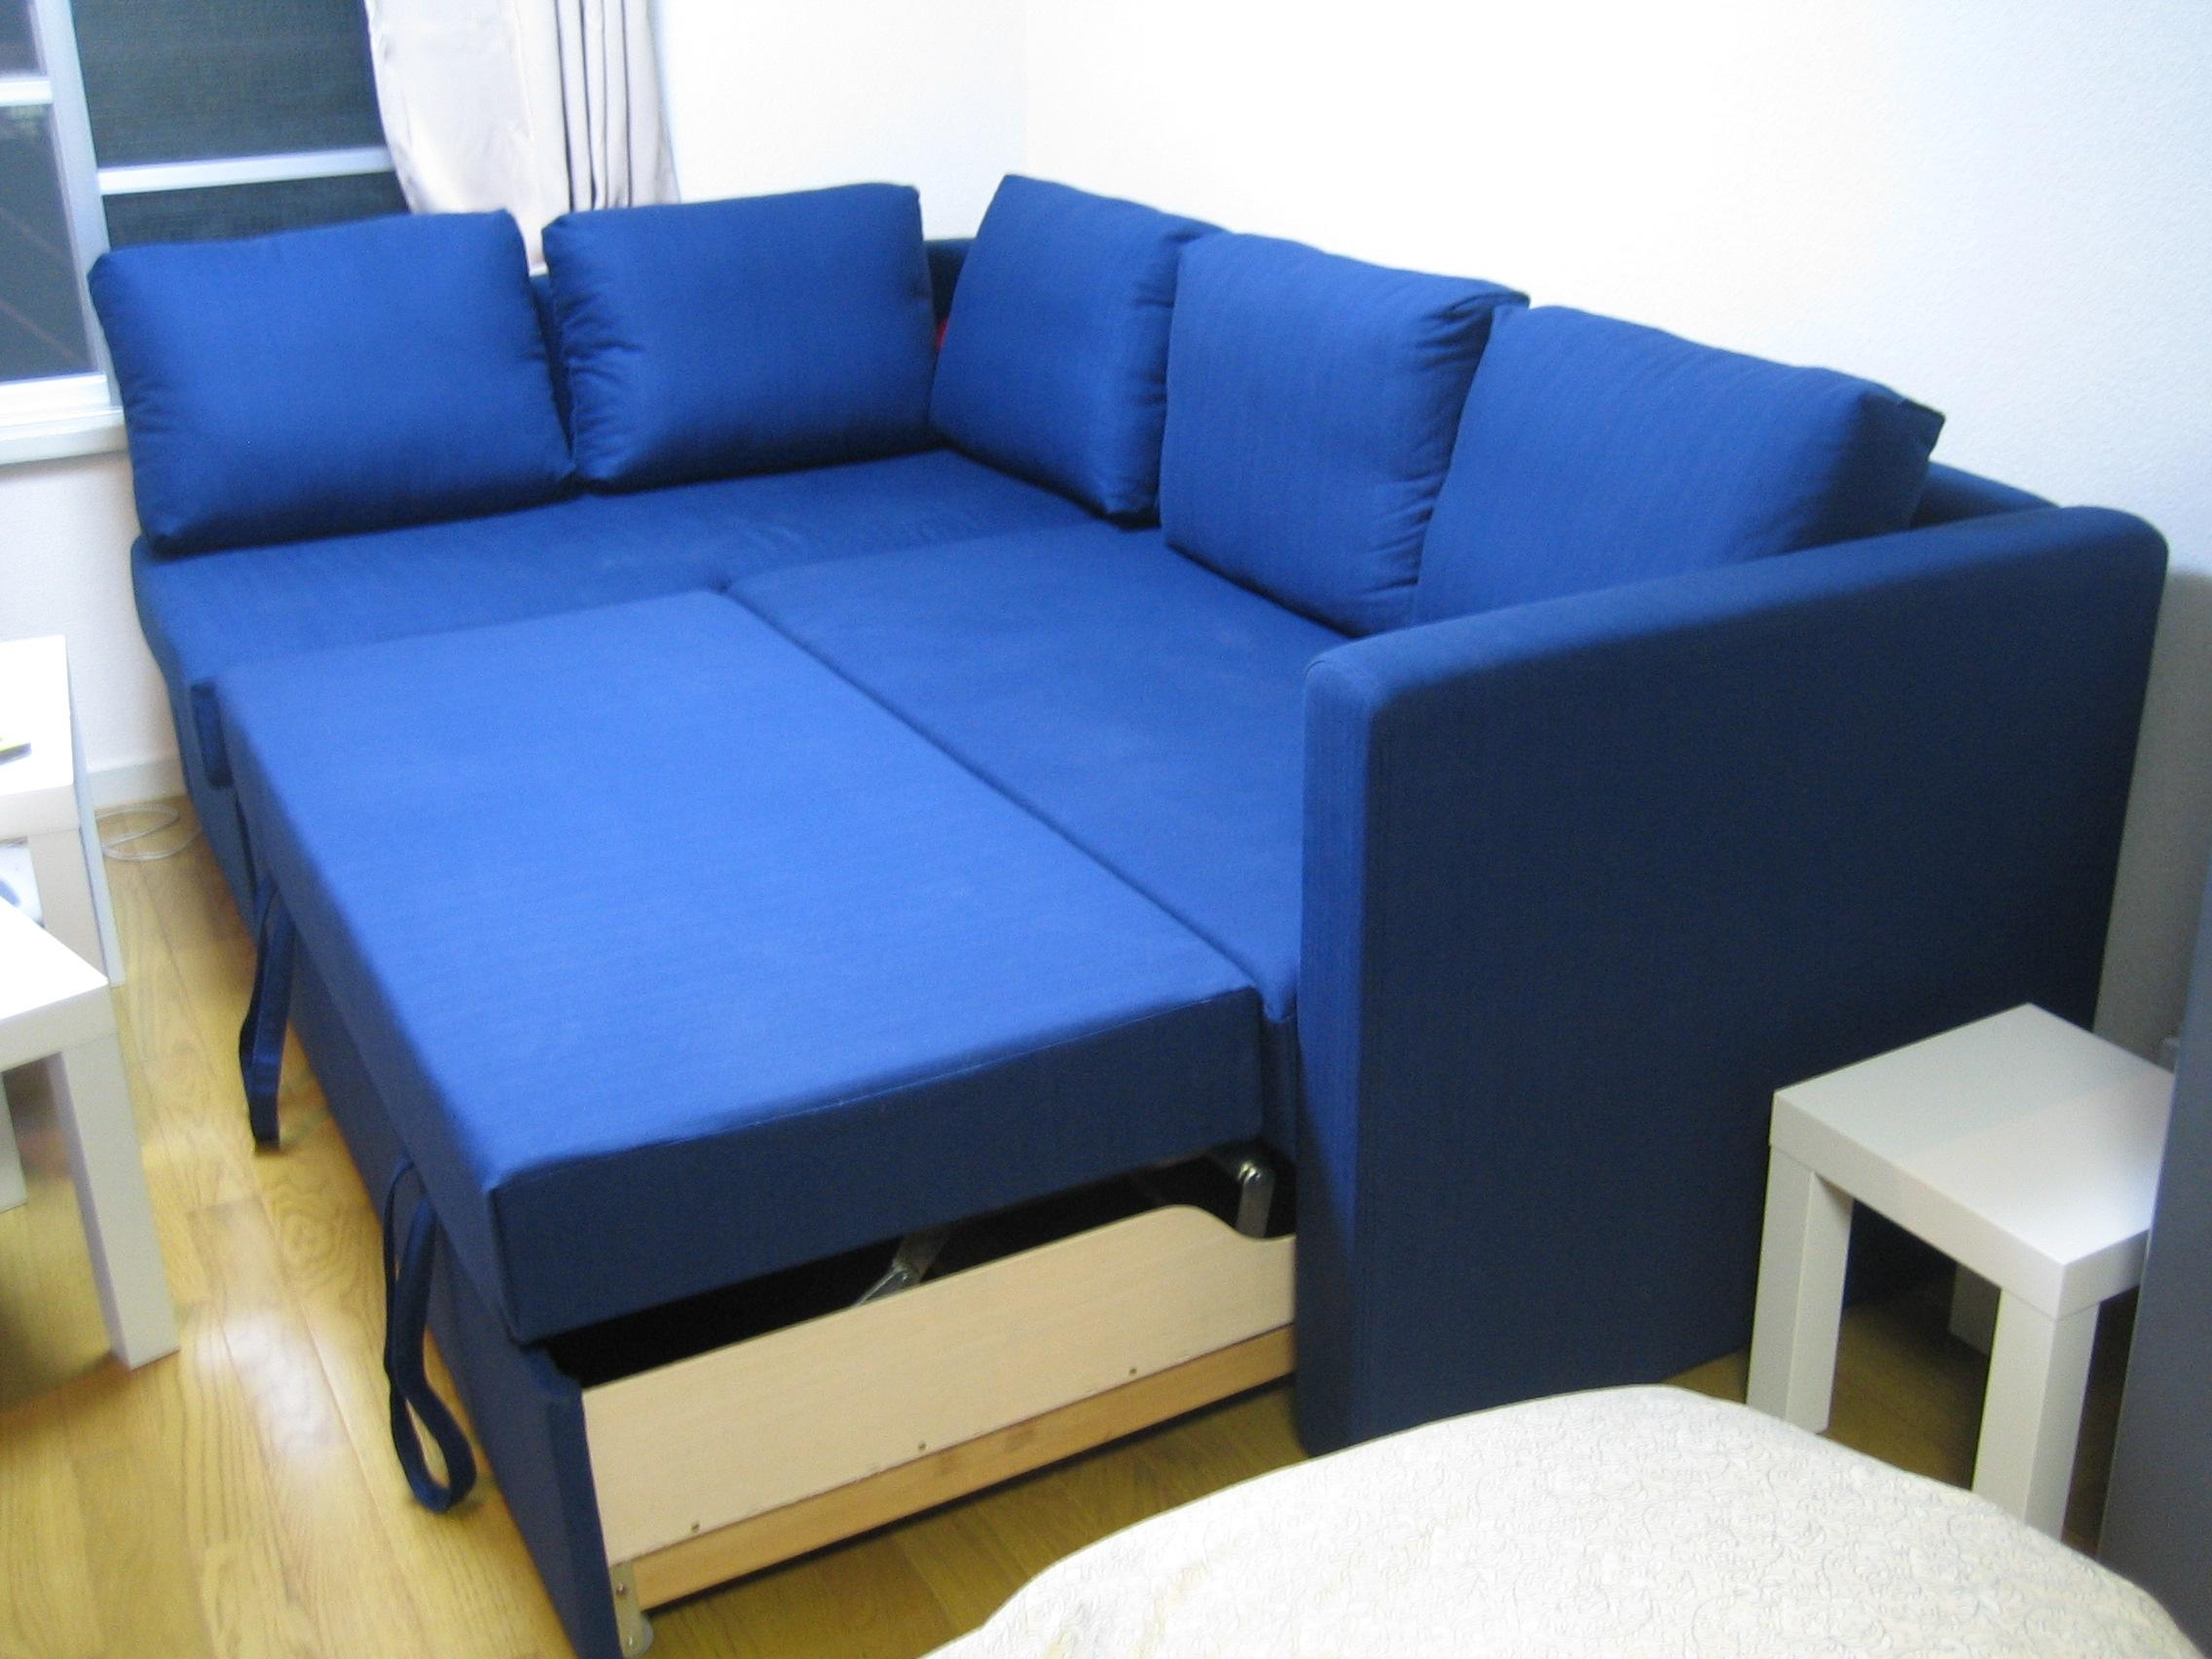 Furniture: Ikea Sofa Beds | Sofa With Pull Out Bed Ikea | Ikea For Ikea Sofa Storage (View 9 of 20)